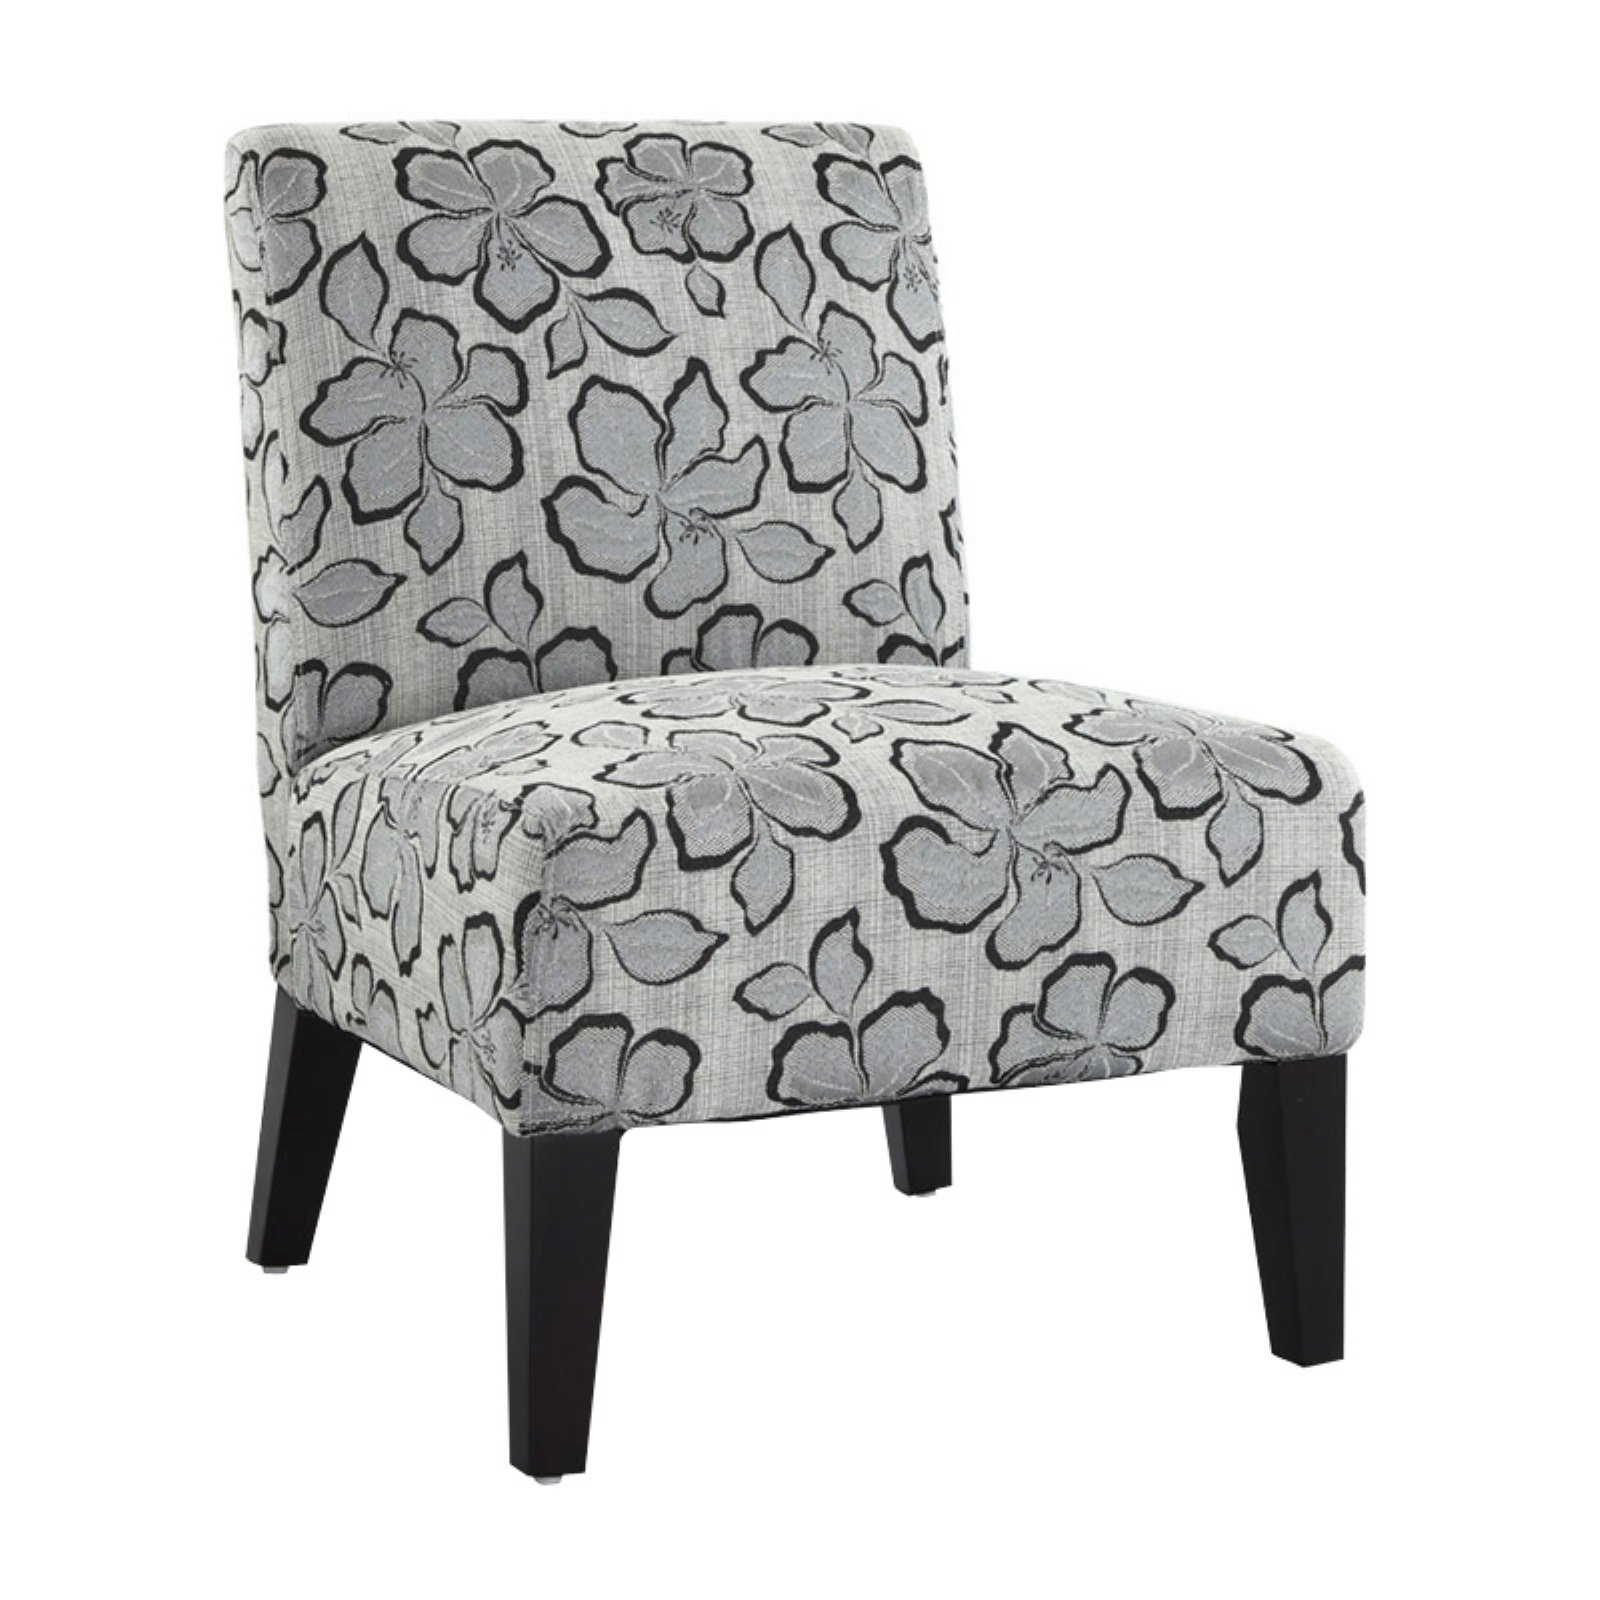 Monaco Accent Chair - Hibiscus Pewter